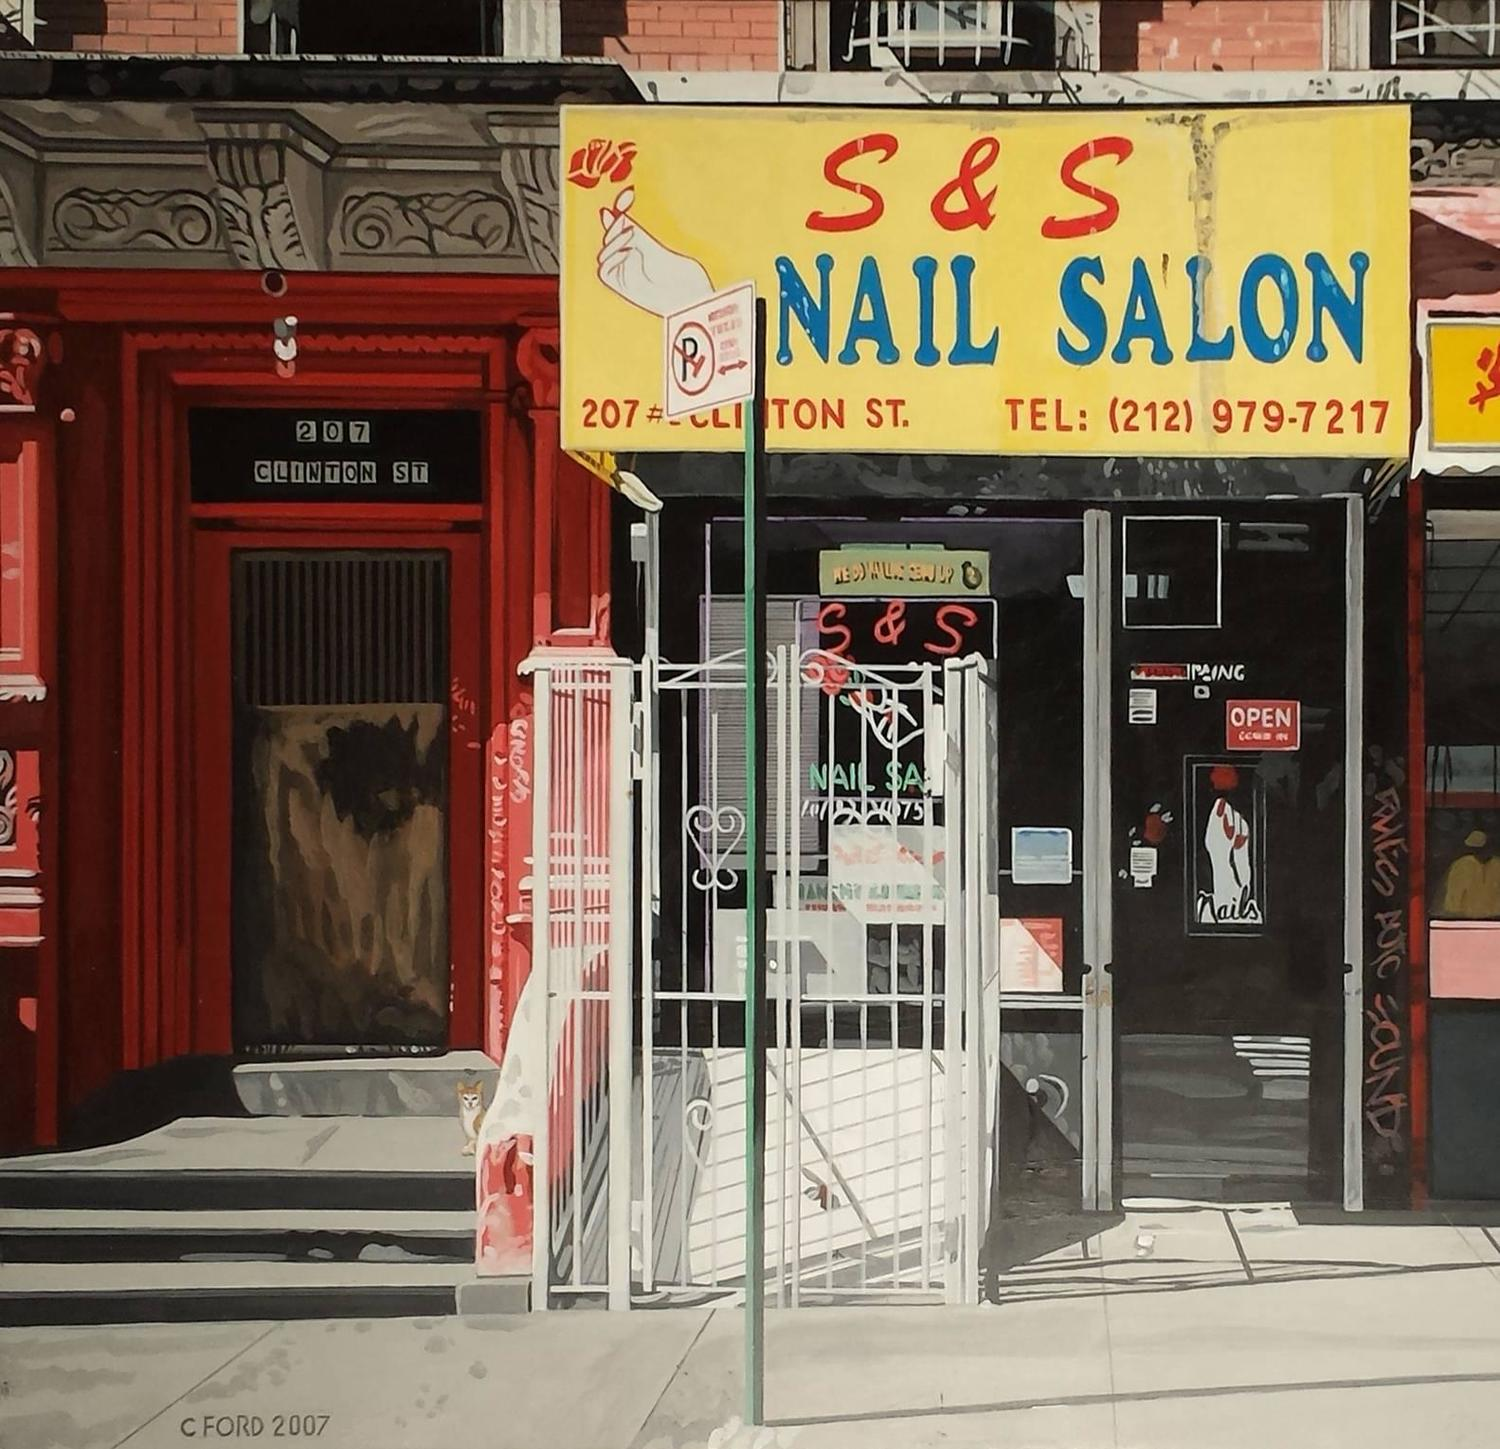 Charles ford new york nail salon 17x26 acrylic on for 24 nail salon nyc